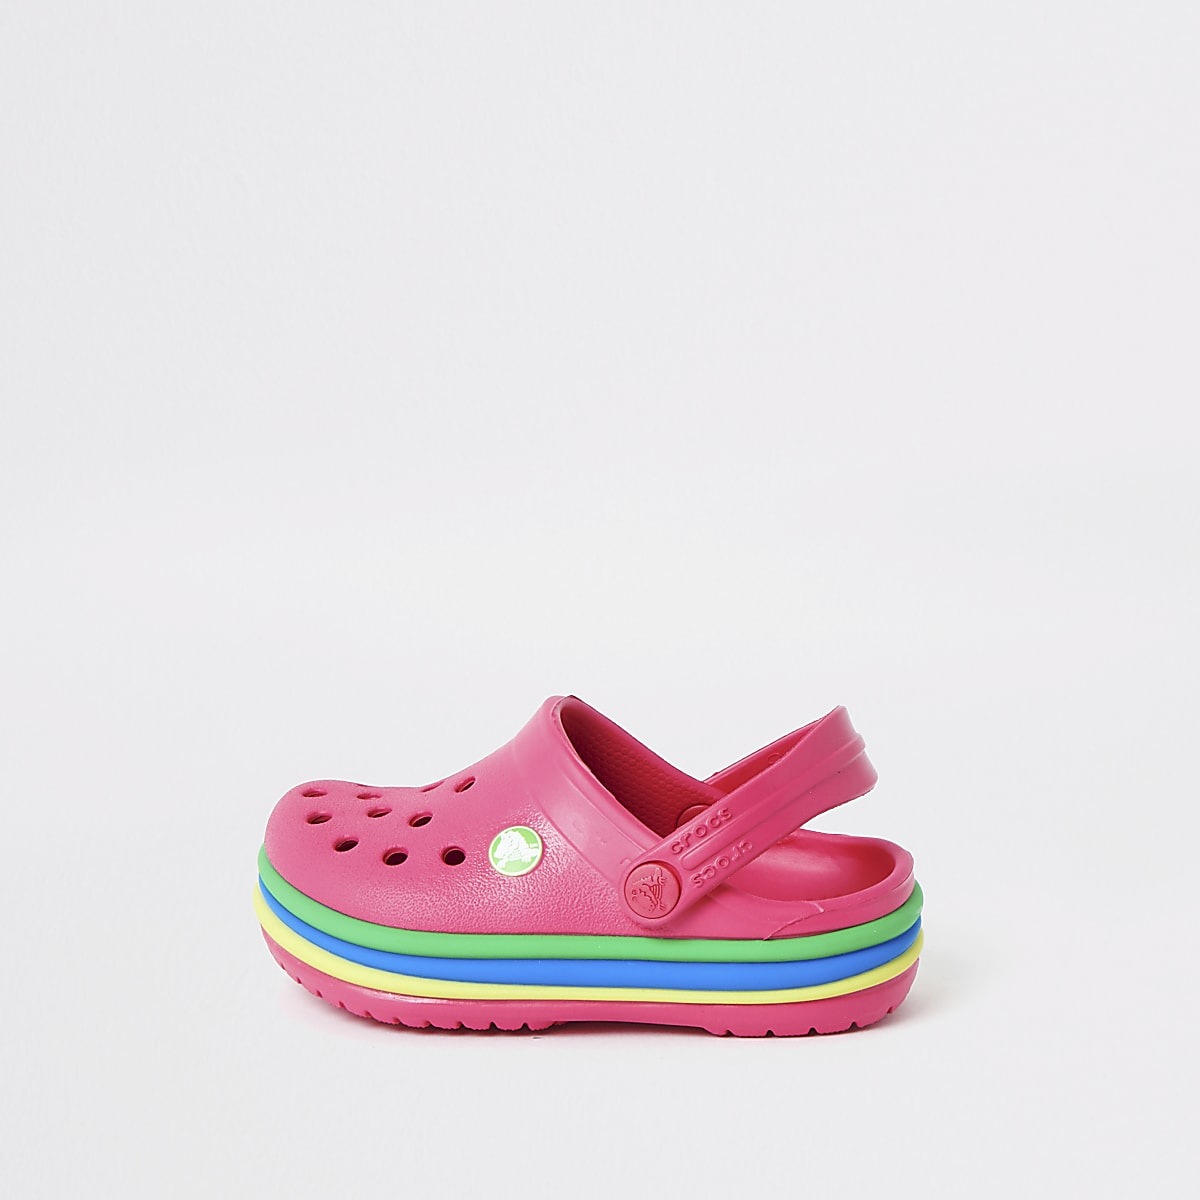 Mini girls Crocs pink rainbow clogs